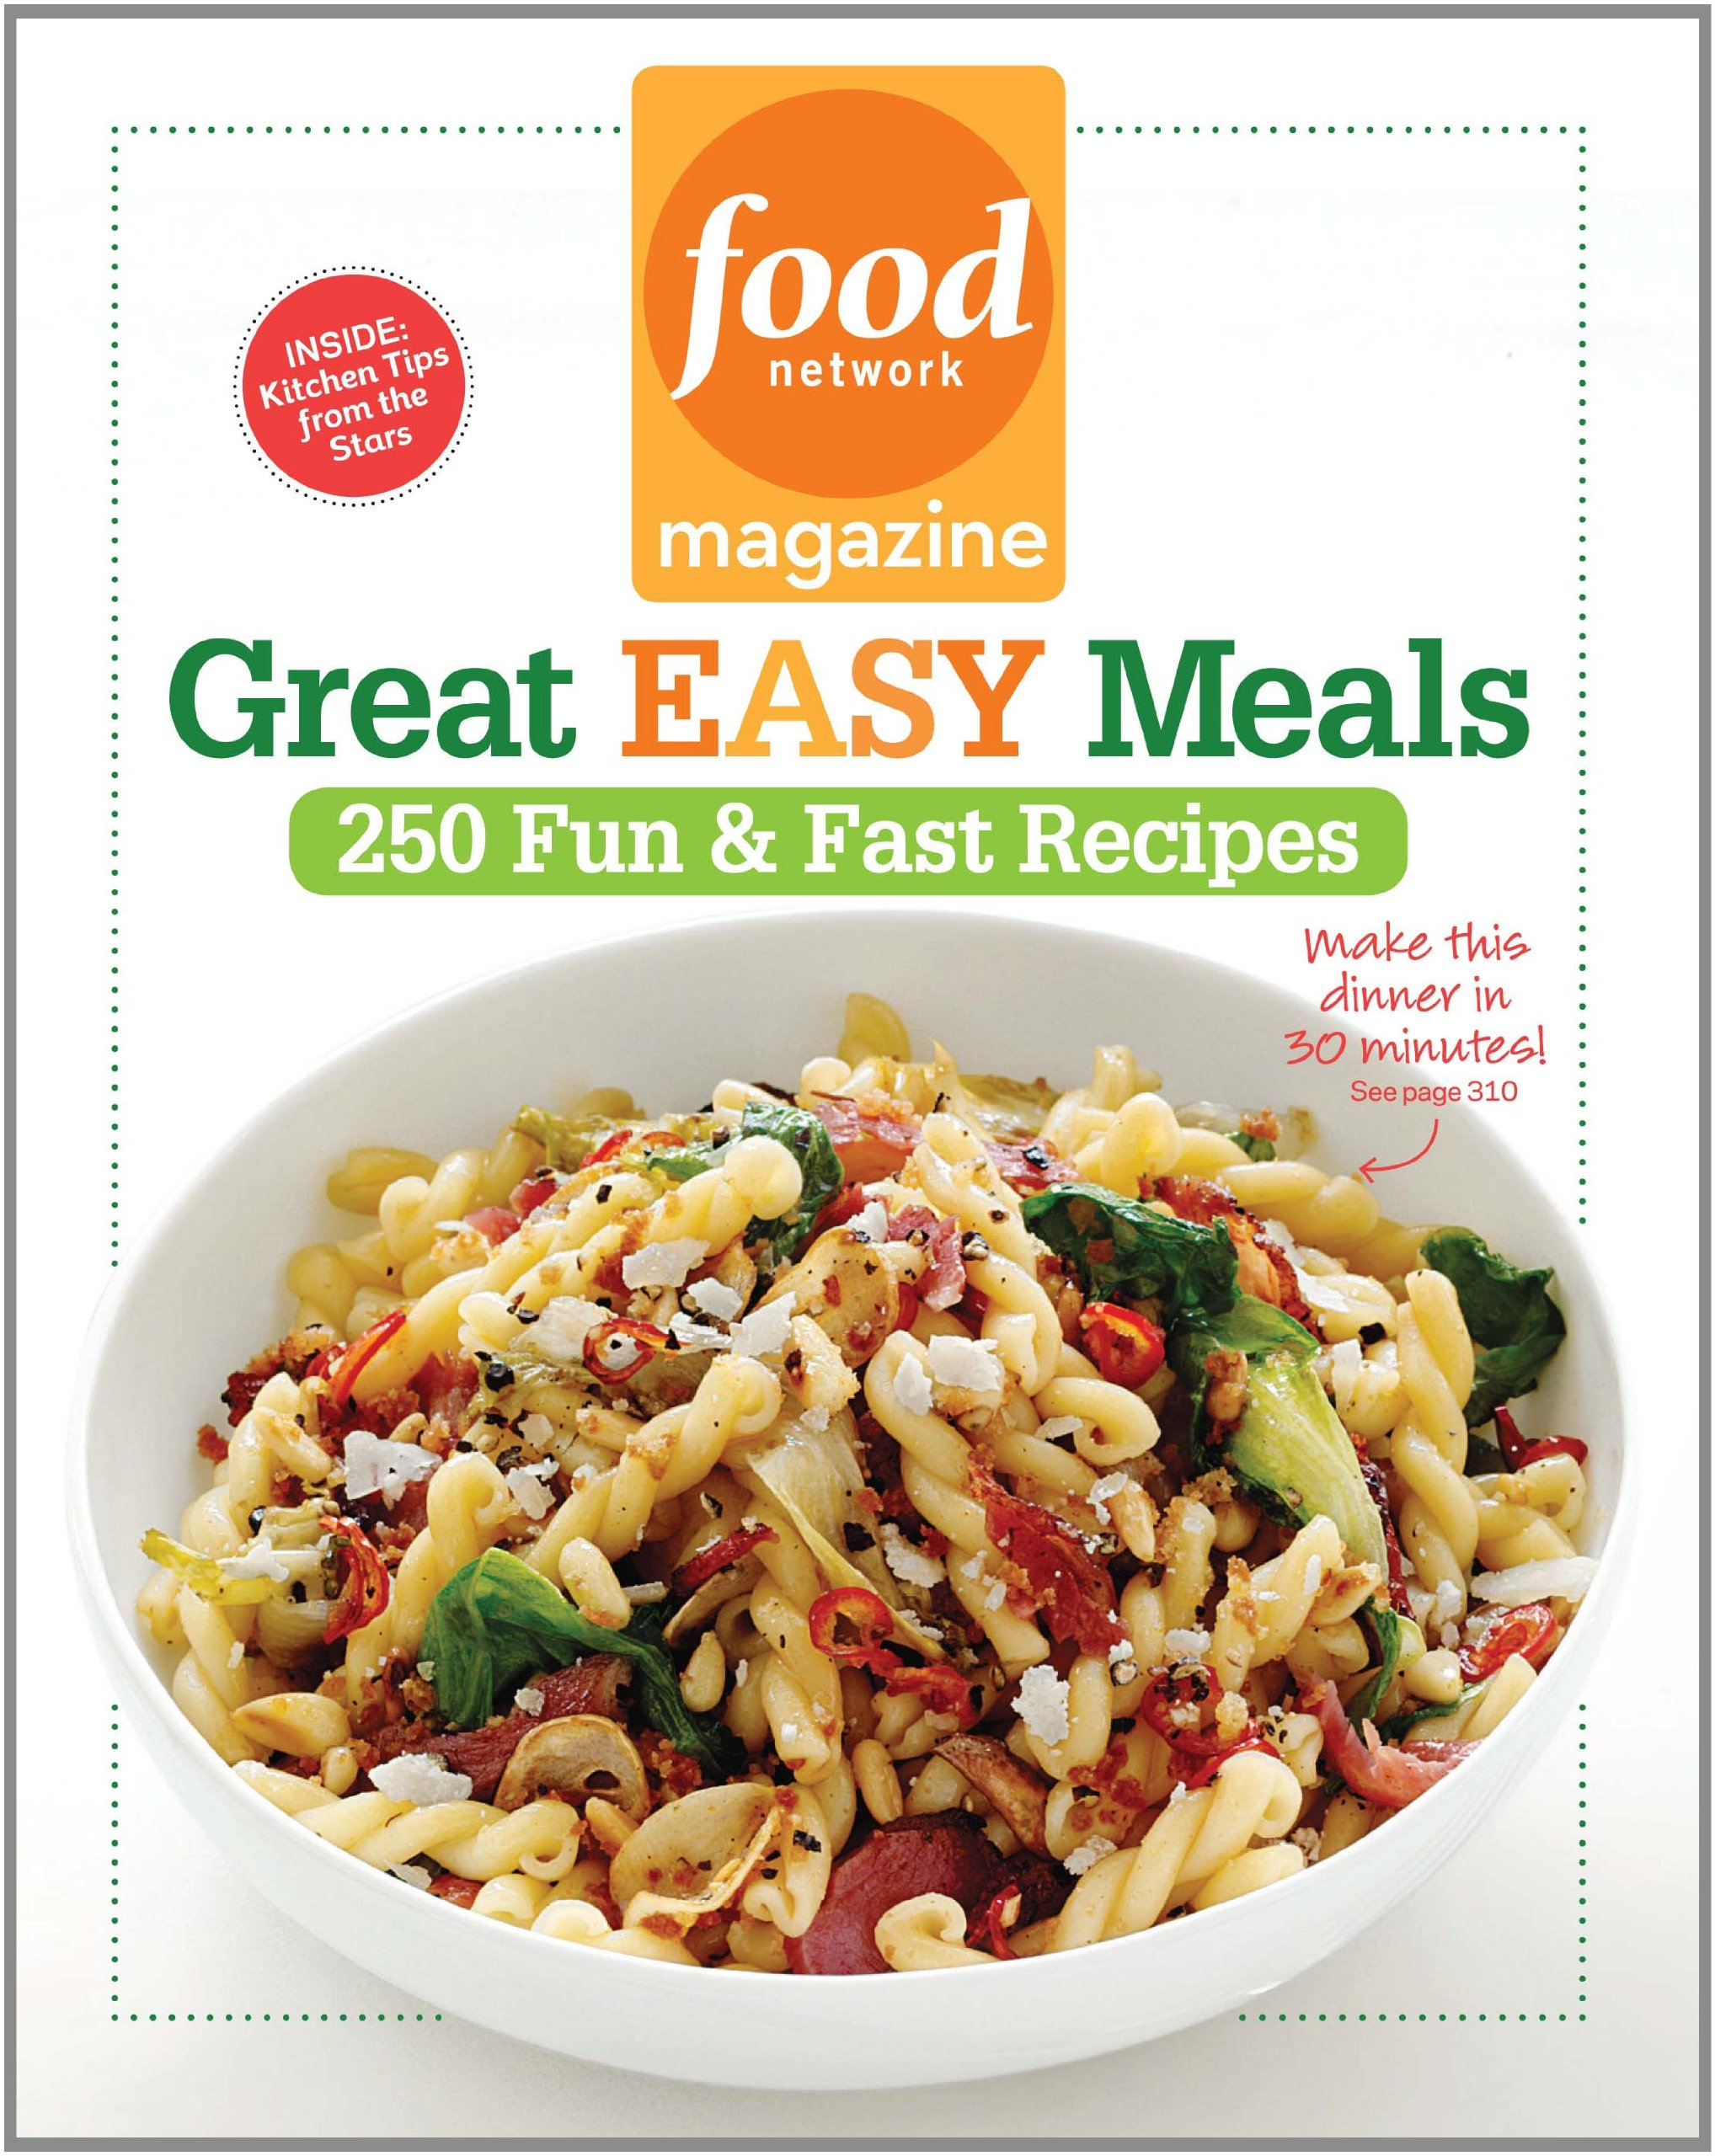 Food network magazine great easy meals 250 fun fast recipes food food network magazine great easy meals 250 fun fast recipes food network magazine 9781401324193 amazon books forumfinder Images